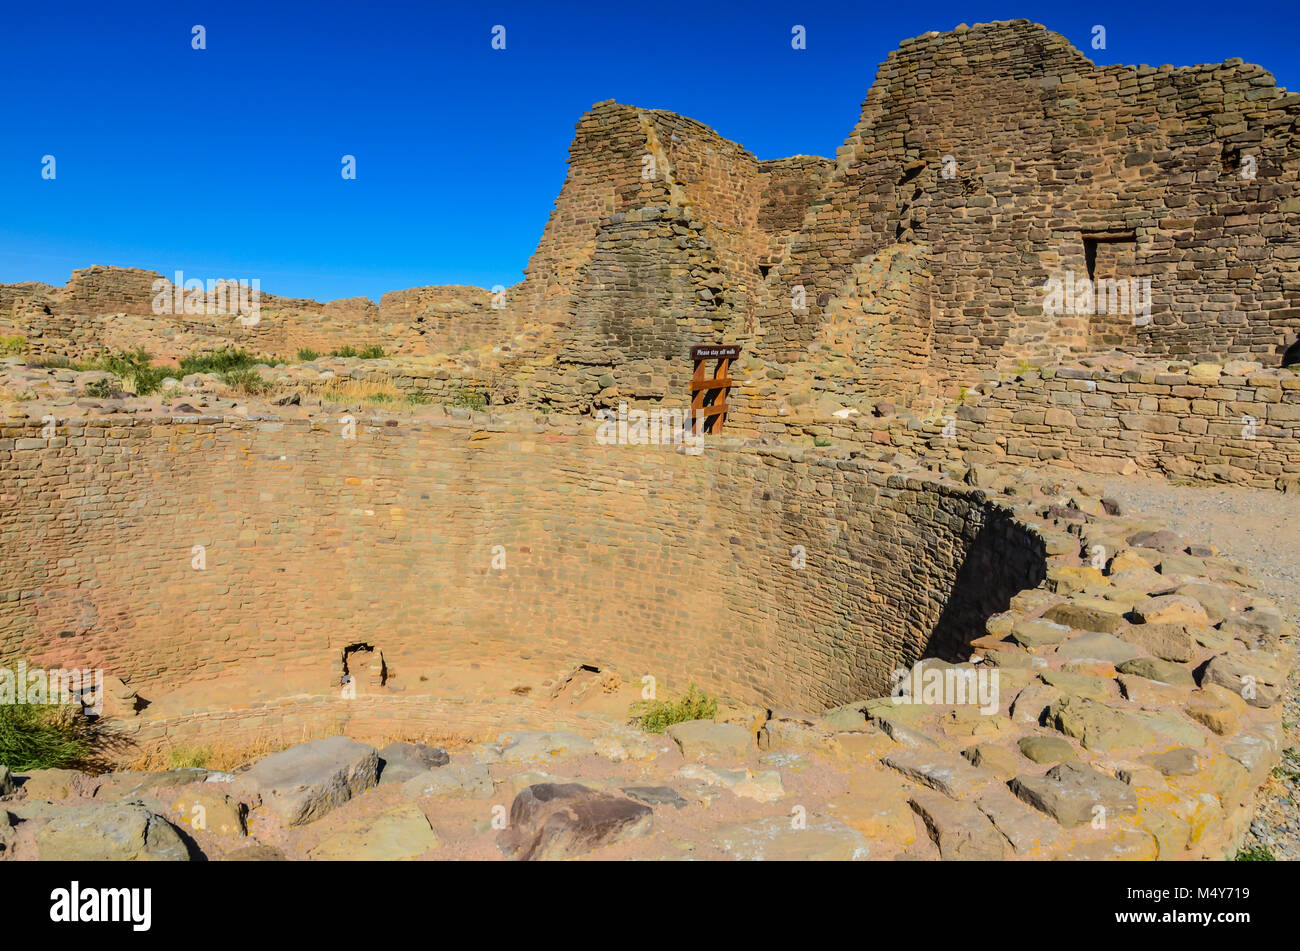 Ancient ruins of Pueblo Indians Great House. - Stock Image